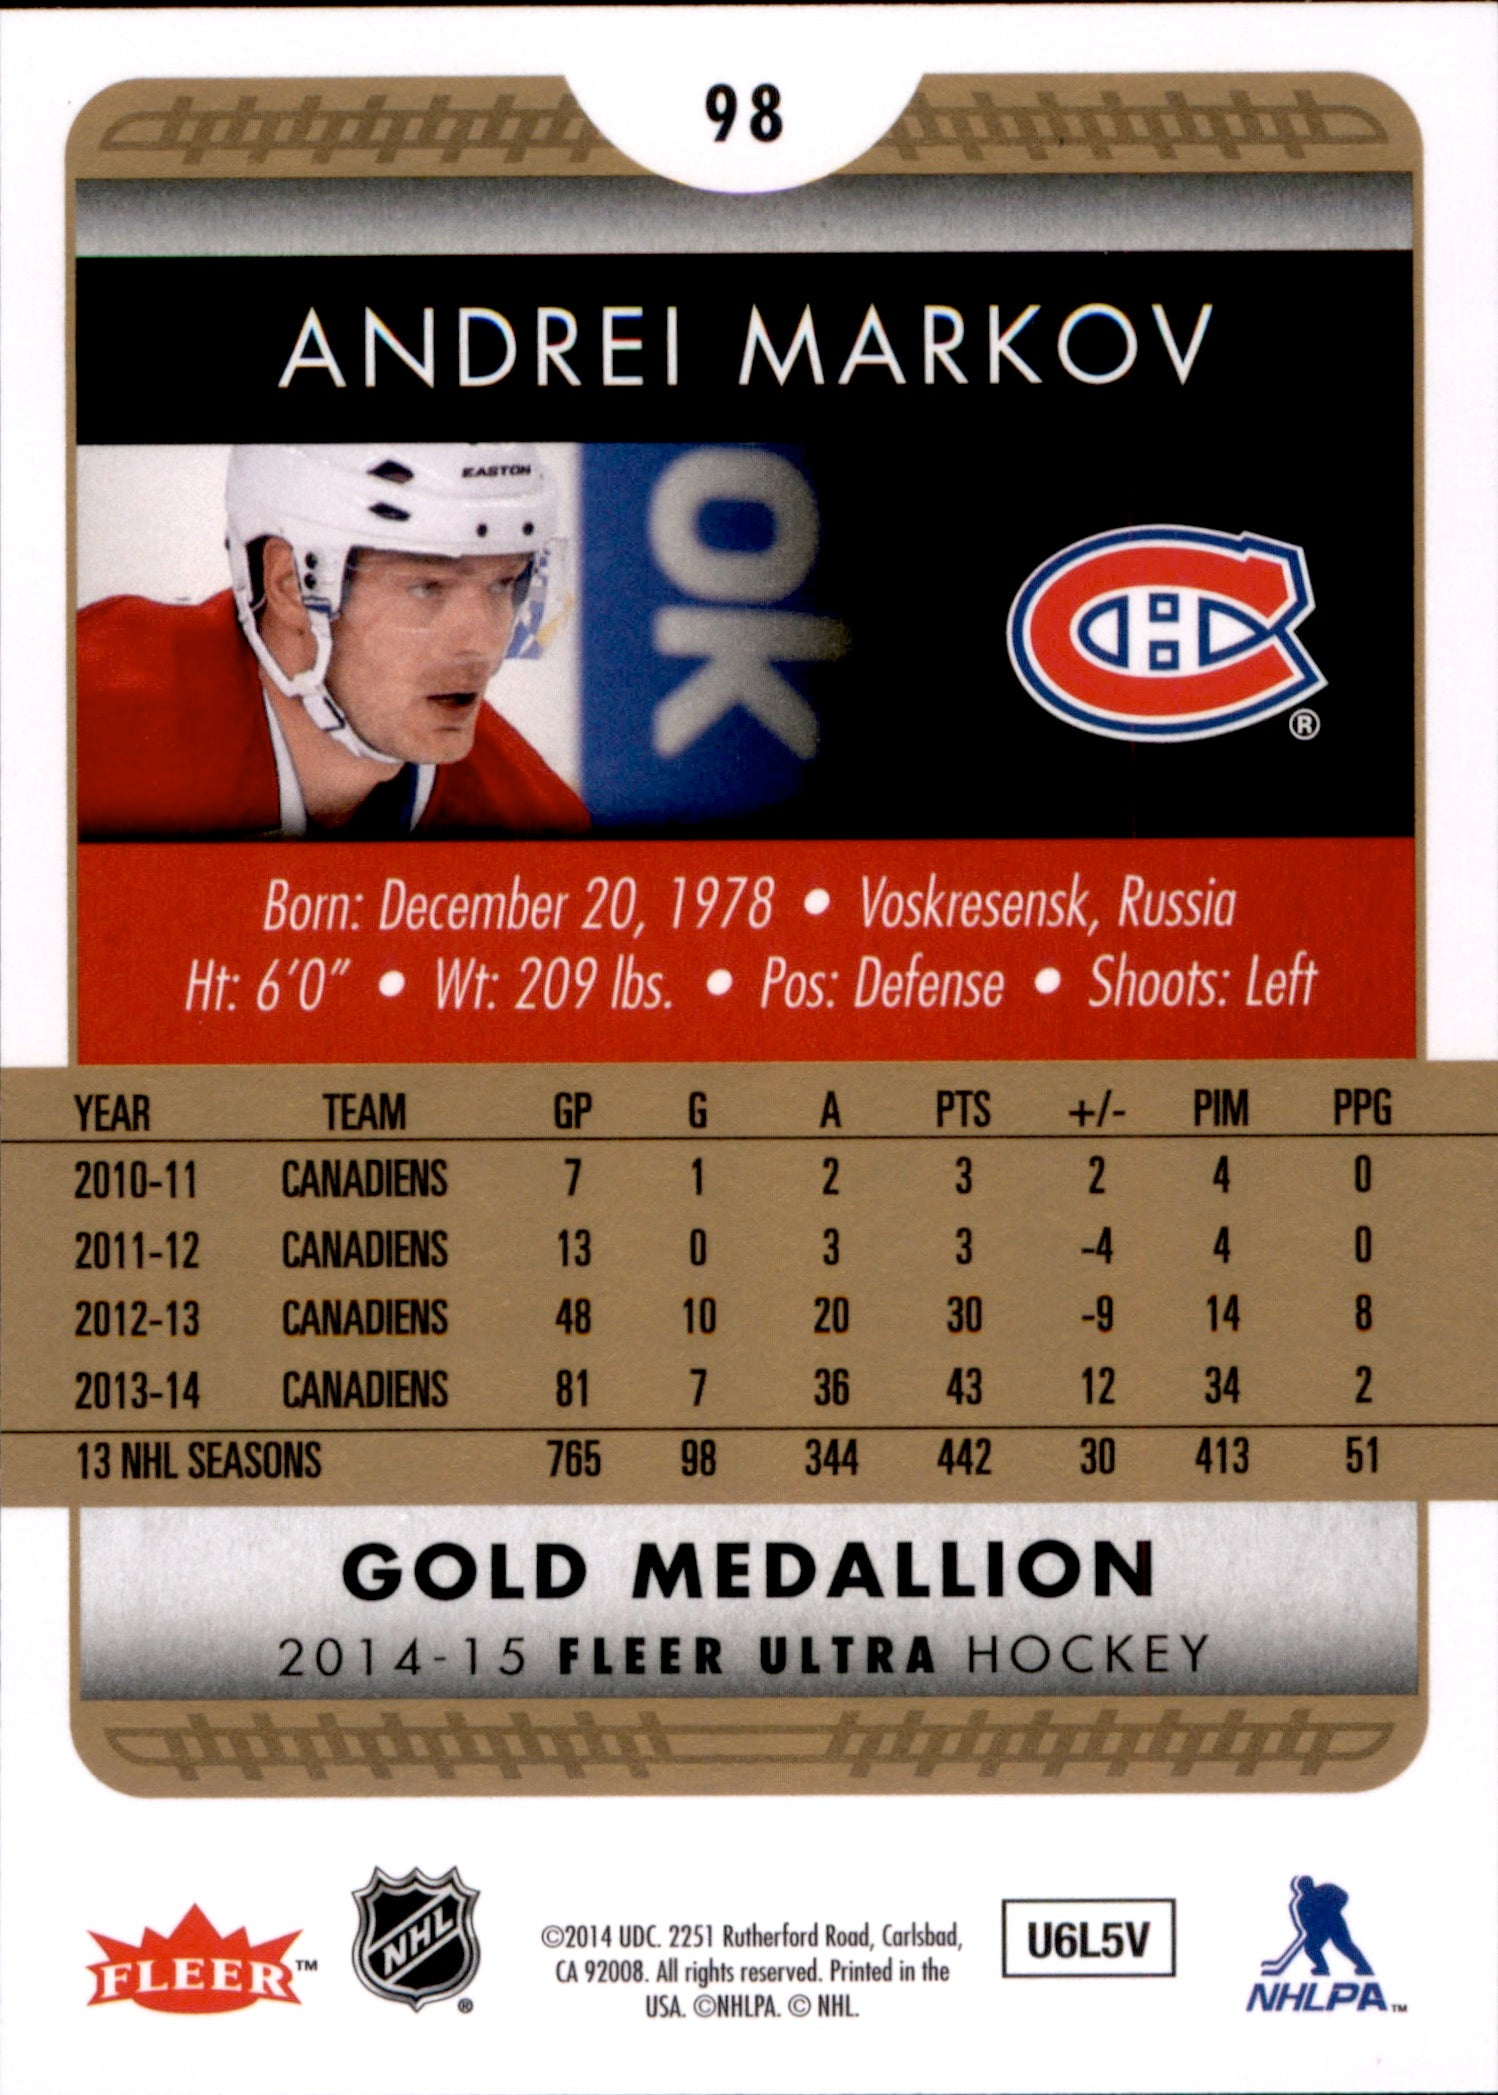 2014-15 Fleer Ultra Gold Medallion #098 Andrei Markov | Eastridge Sports Cards